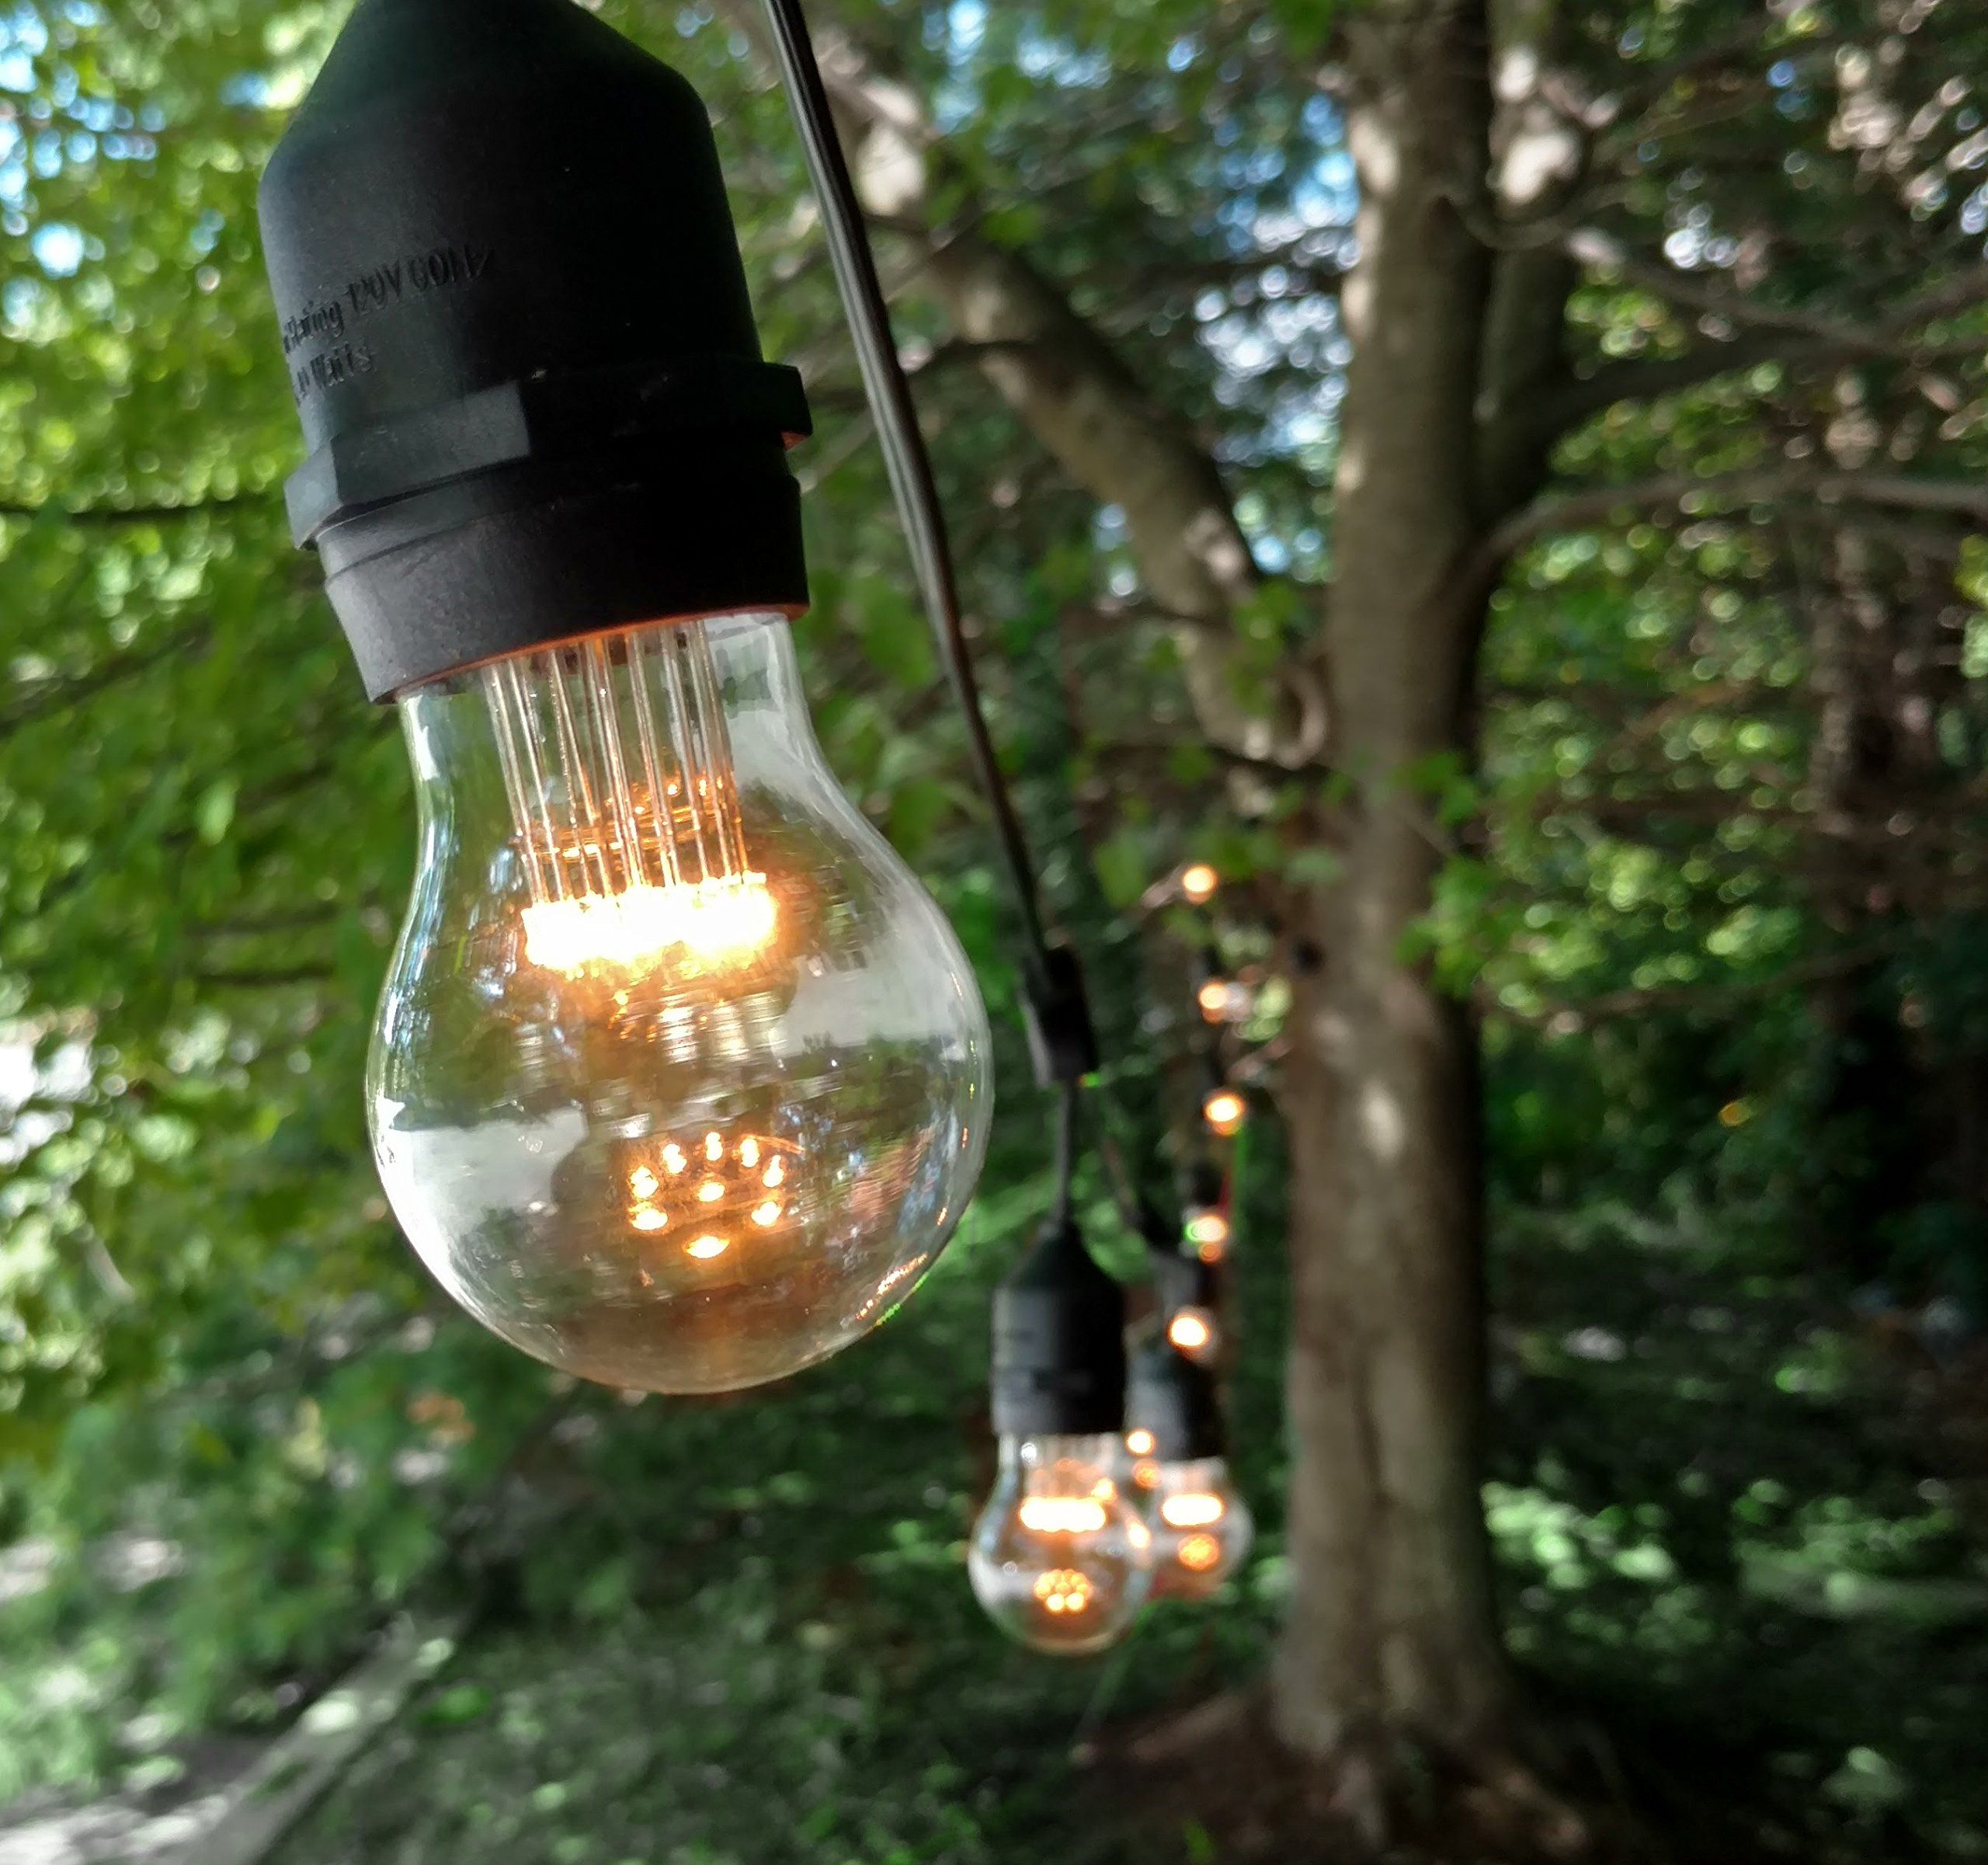 E26 outdoor commercial string lights with suspended socket for e26 outdoor commercial string lights with suspended socket for weatherproof heavy duty vintage outside lighting 100 foot 50 socket a15 led 9 diode 1 watt aloadofball Image collections